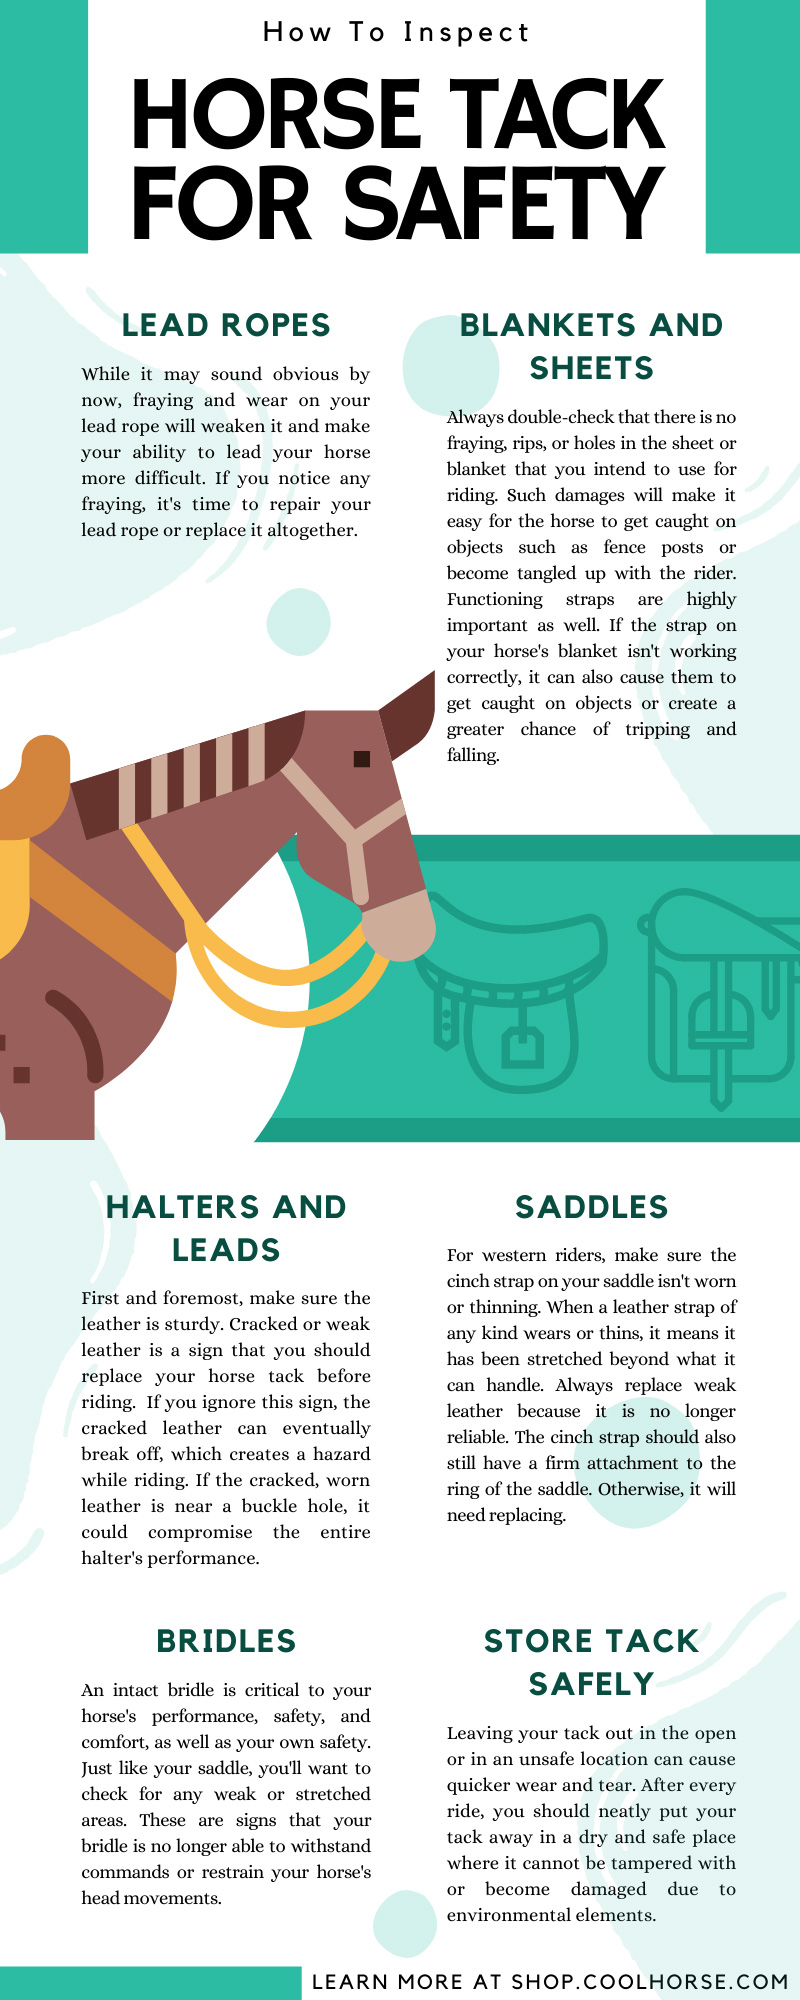 How To Inspect Horse Tack for Safety